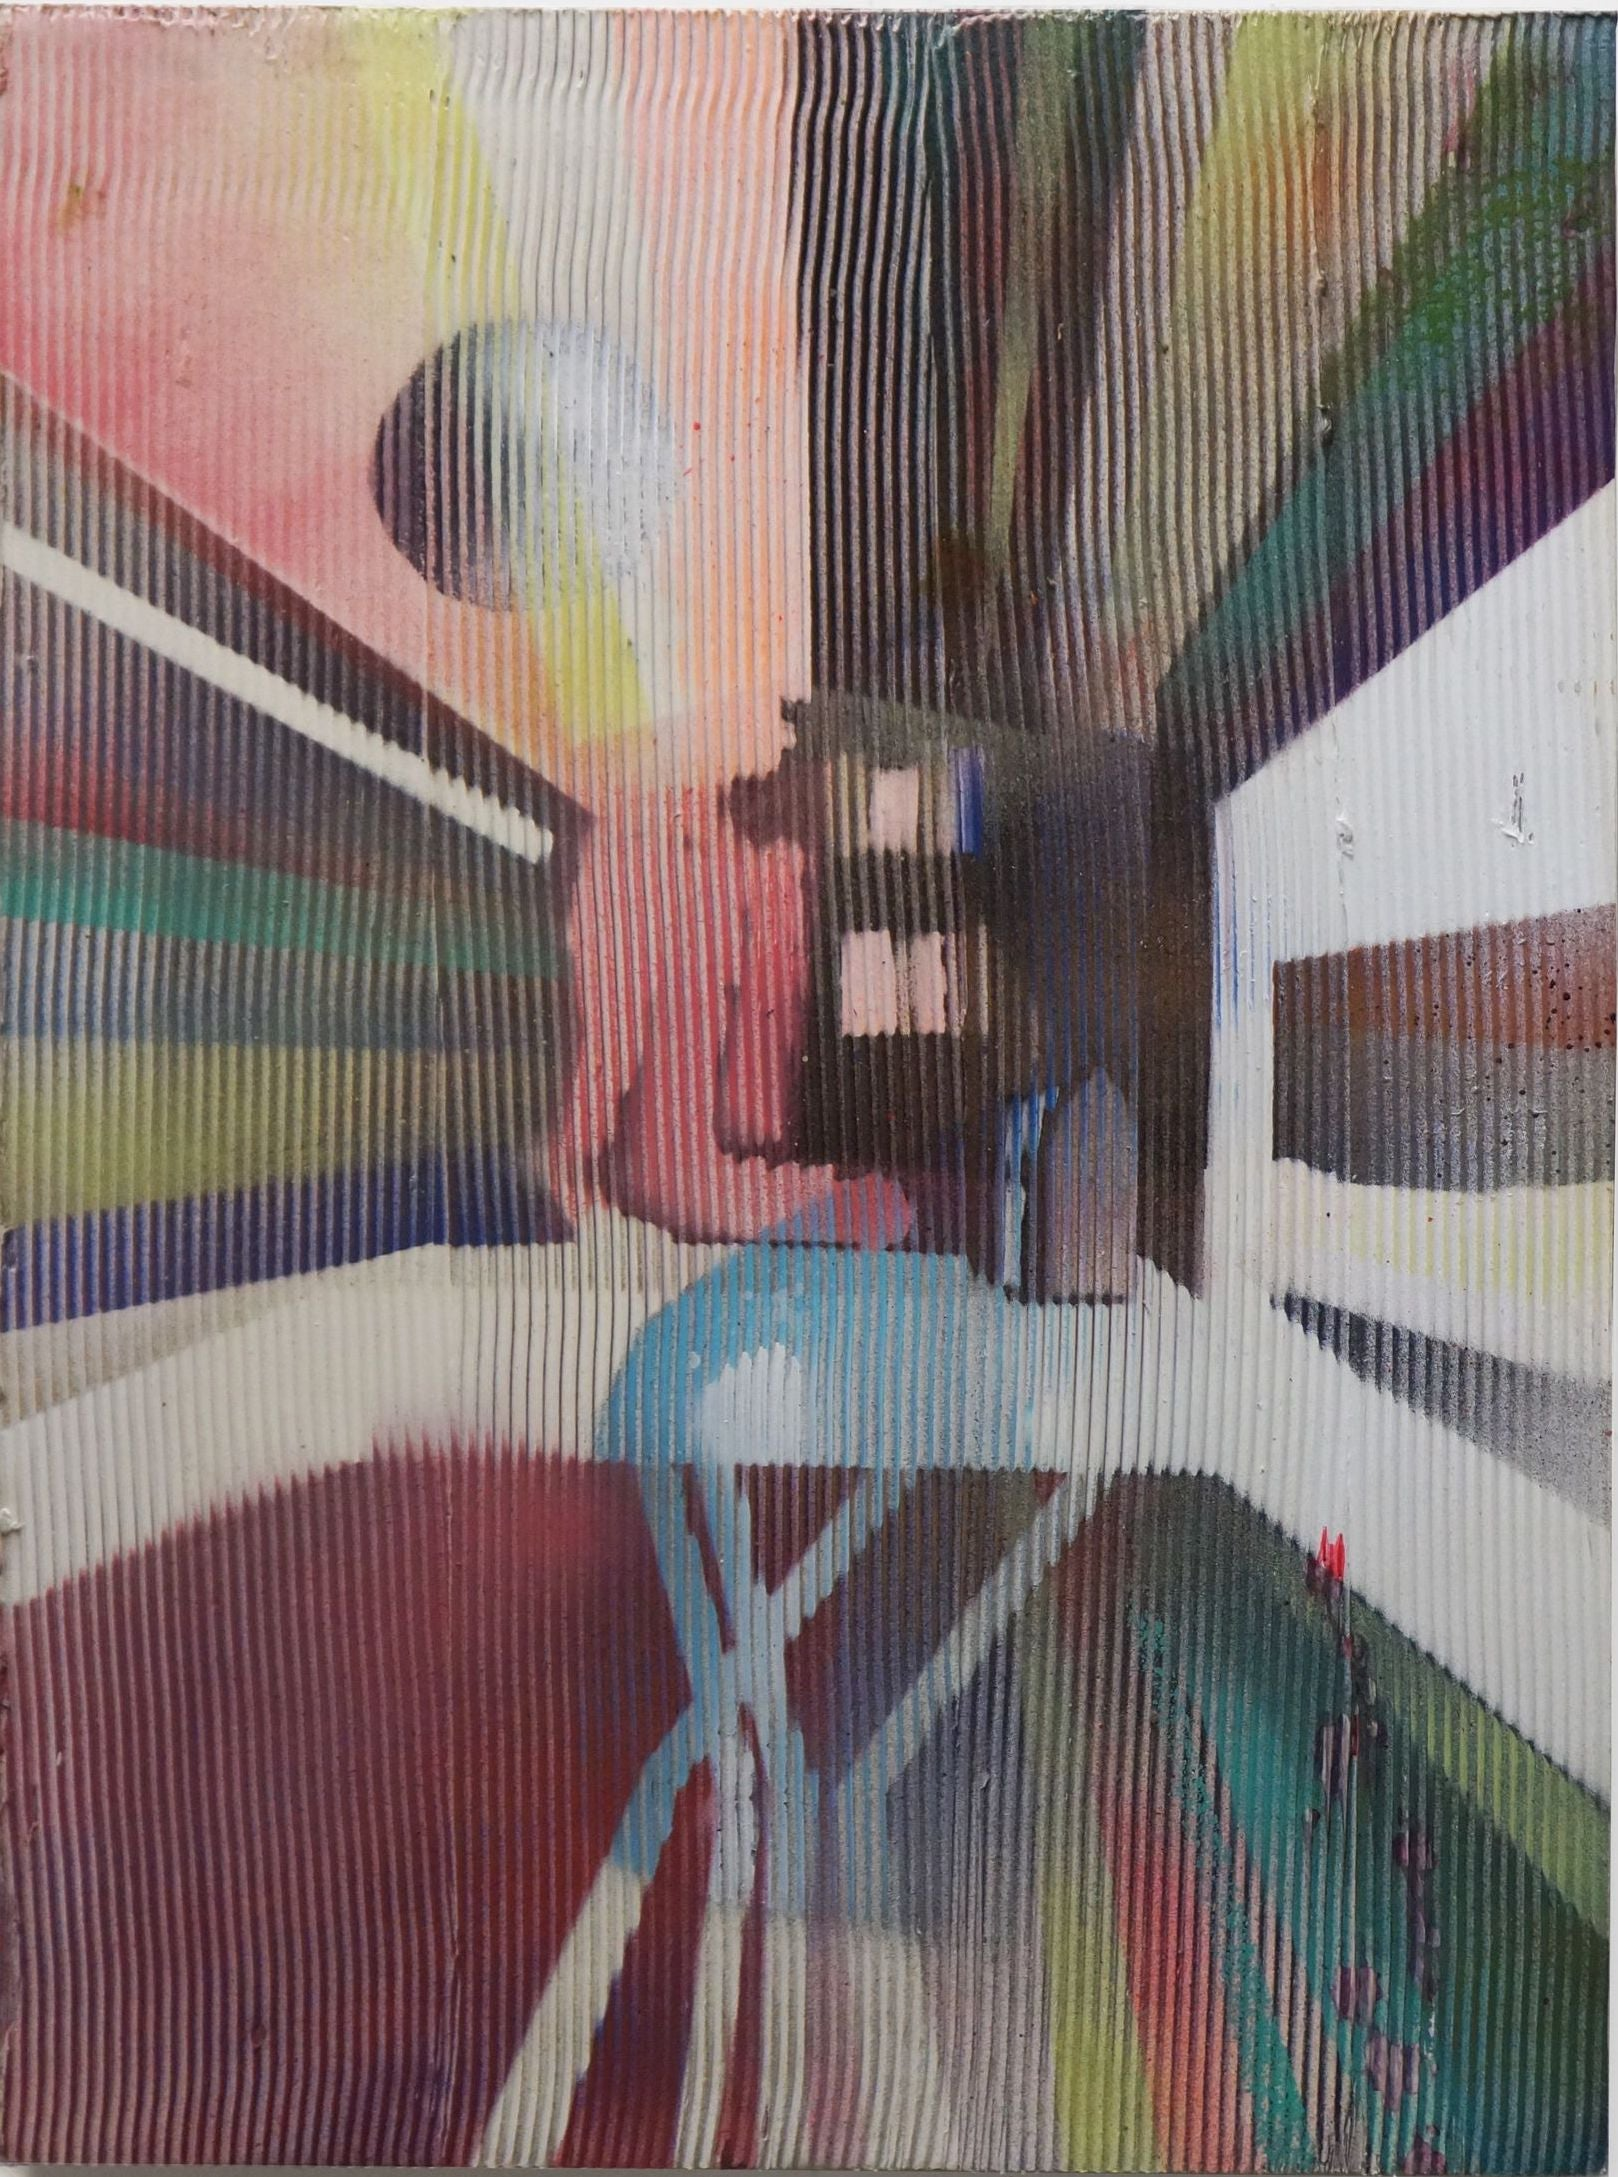 Ironing - texturized lenticular painting, optical illusion, geometric abstract